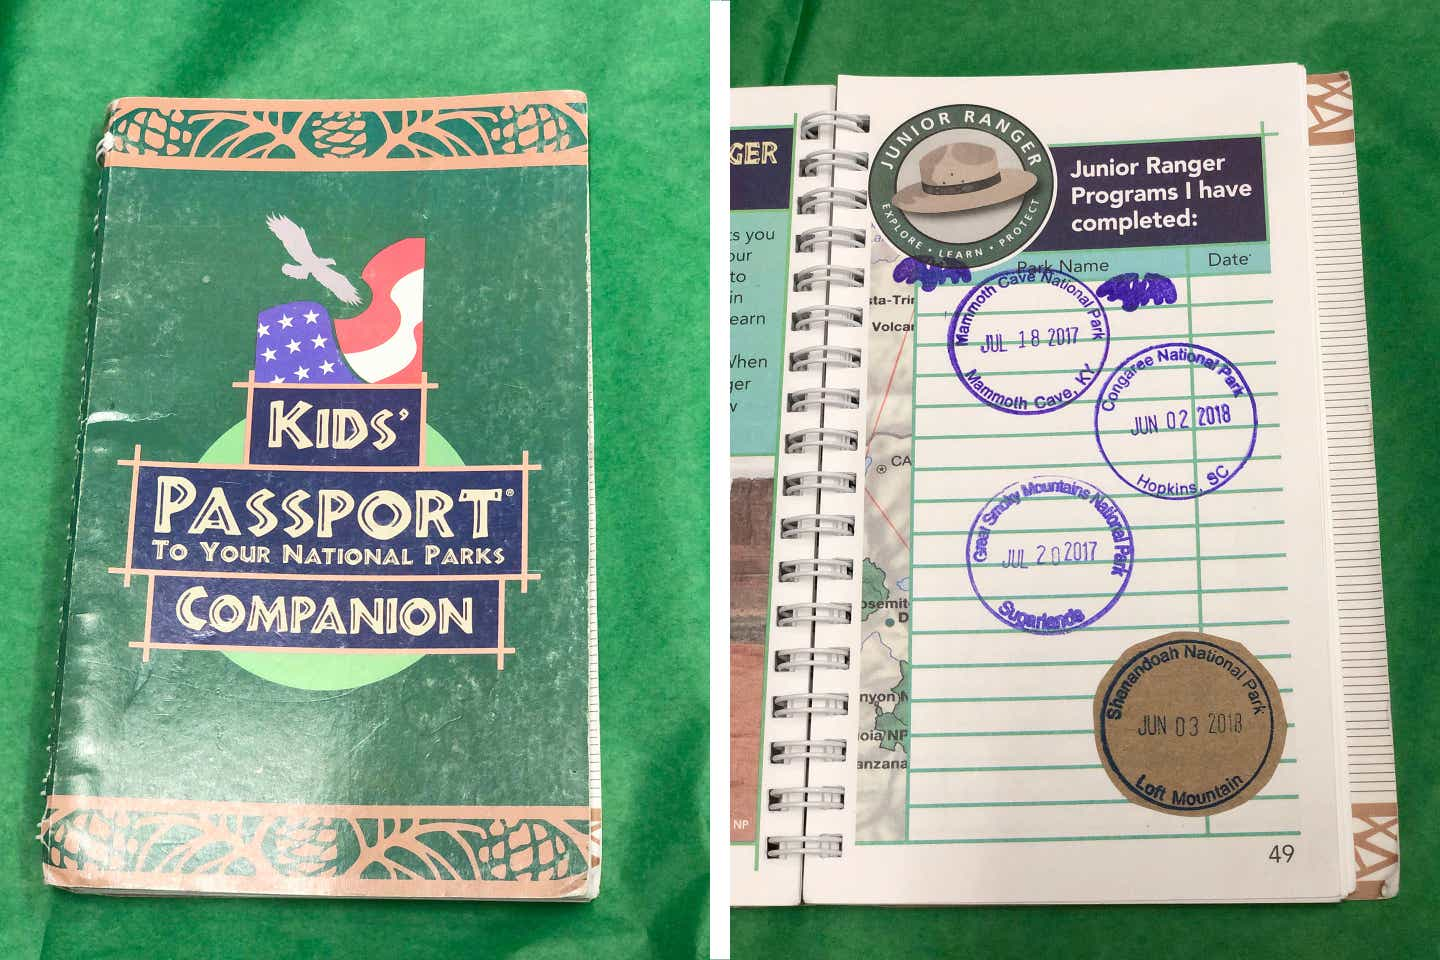 Left: A green booklet that reads, 'Kids' Passport to Your National Parks Companion' sits on green tissue paper. Right: The same booklet is open to a page containing passport stamps.